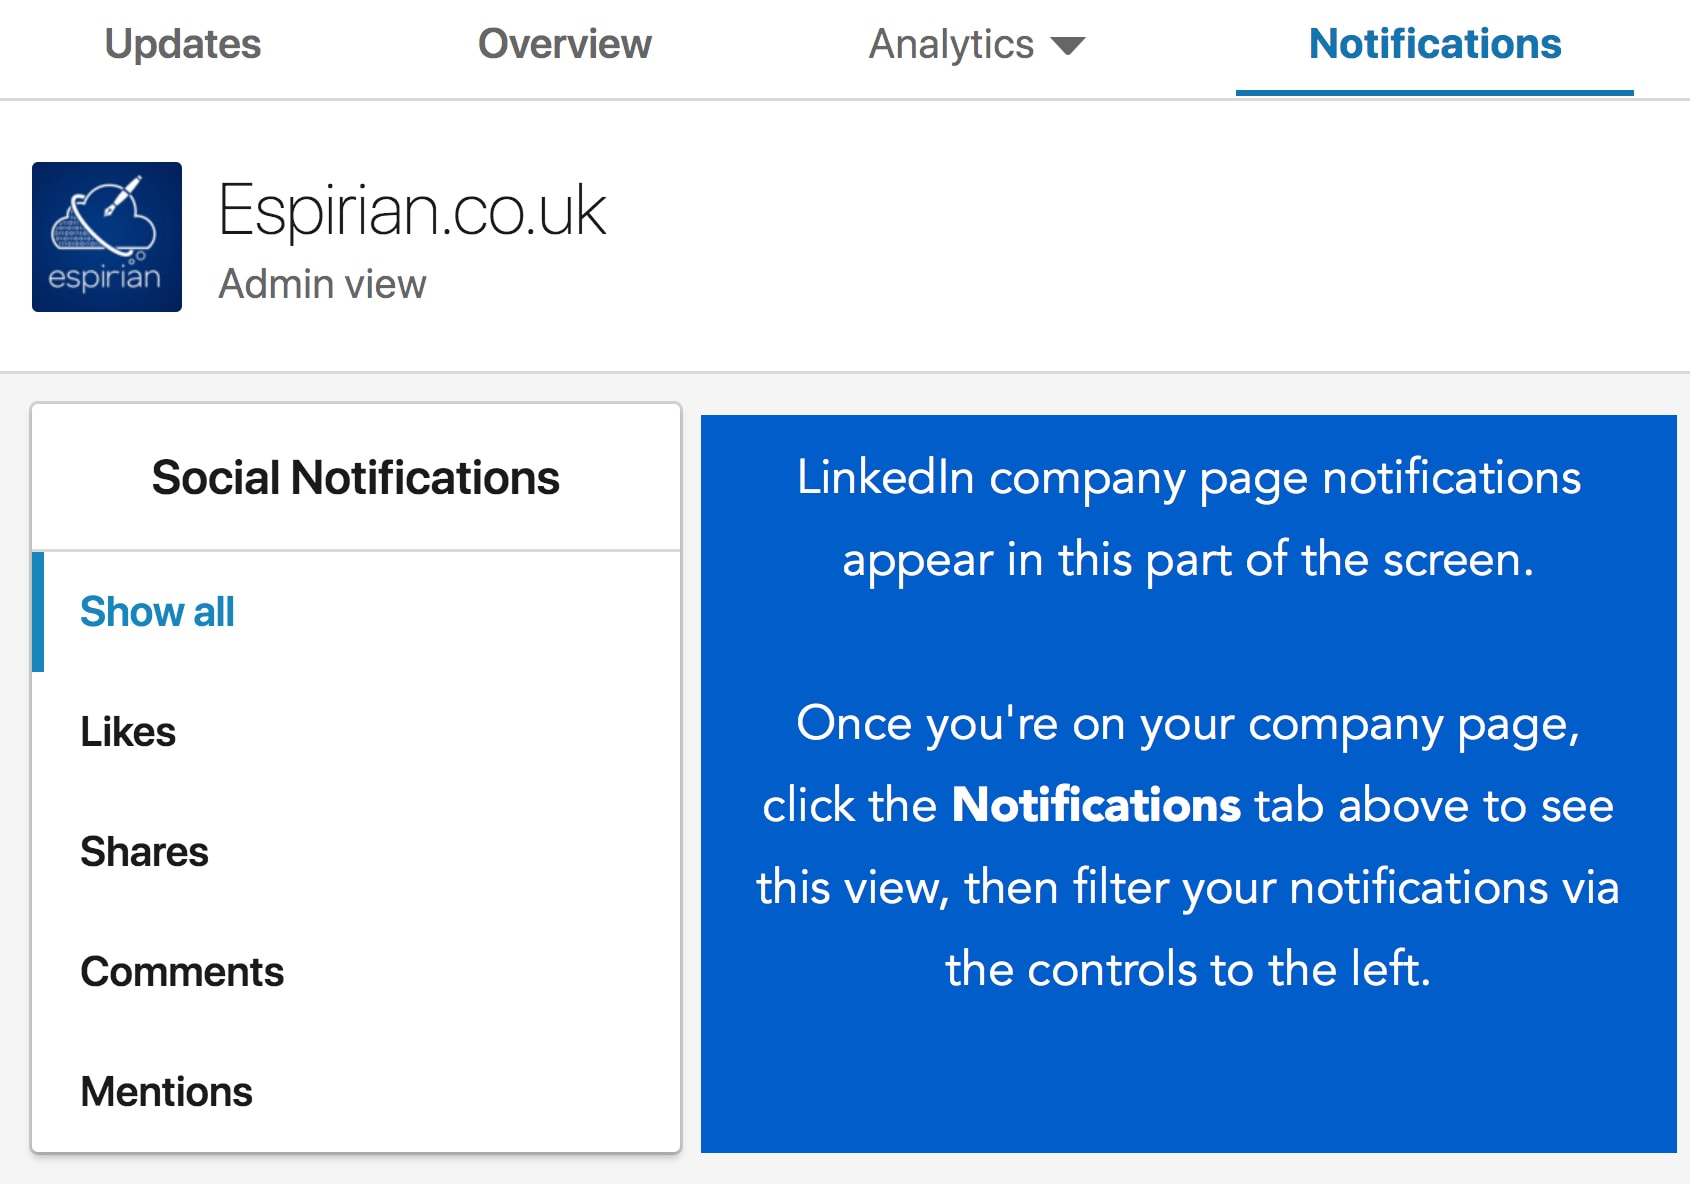 LinkedIn company page notifications